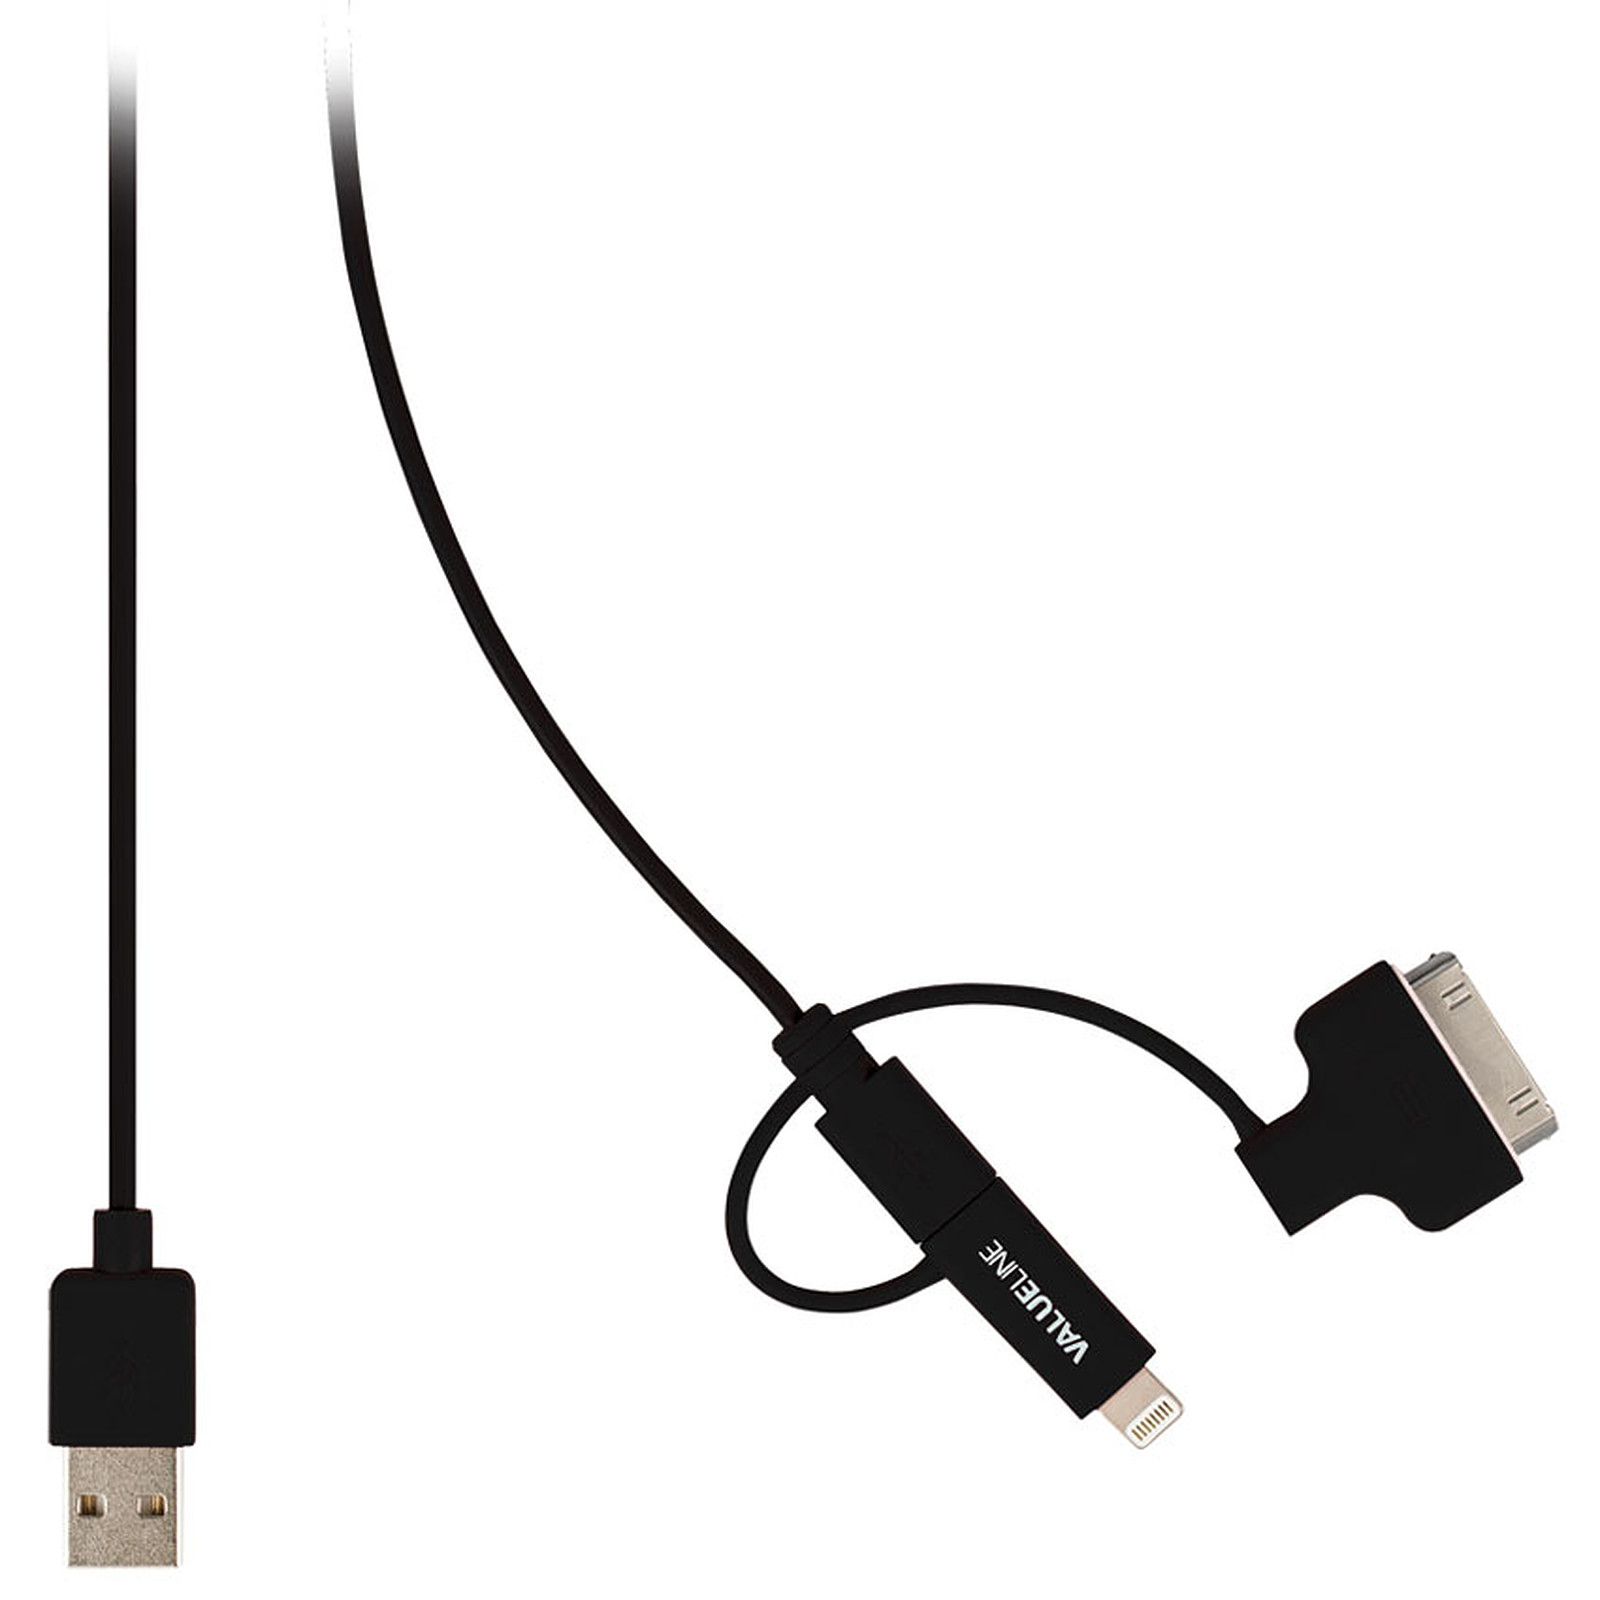 Cable USB a Micro USB + Apple Lightning y Apple 30 pines (negro)